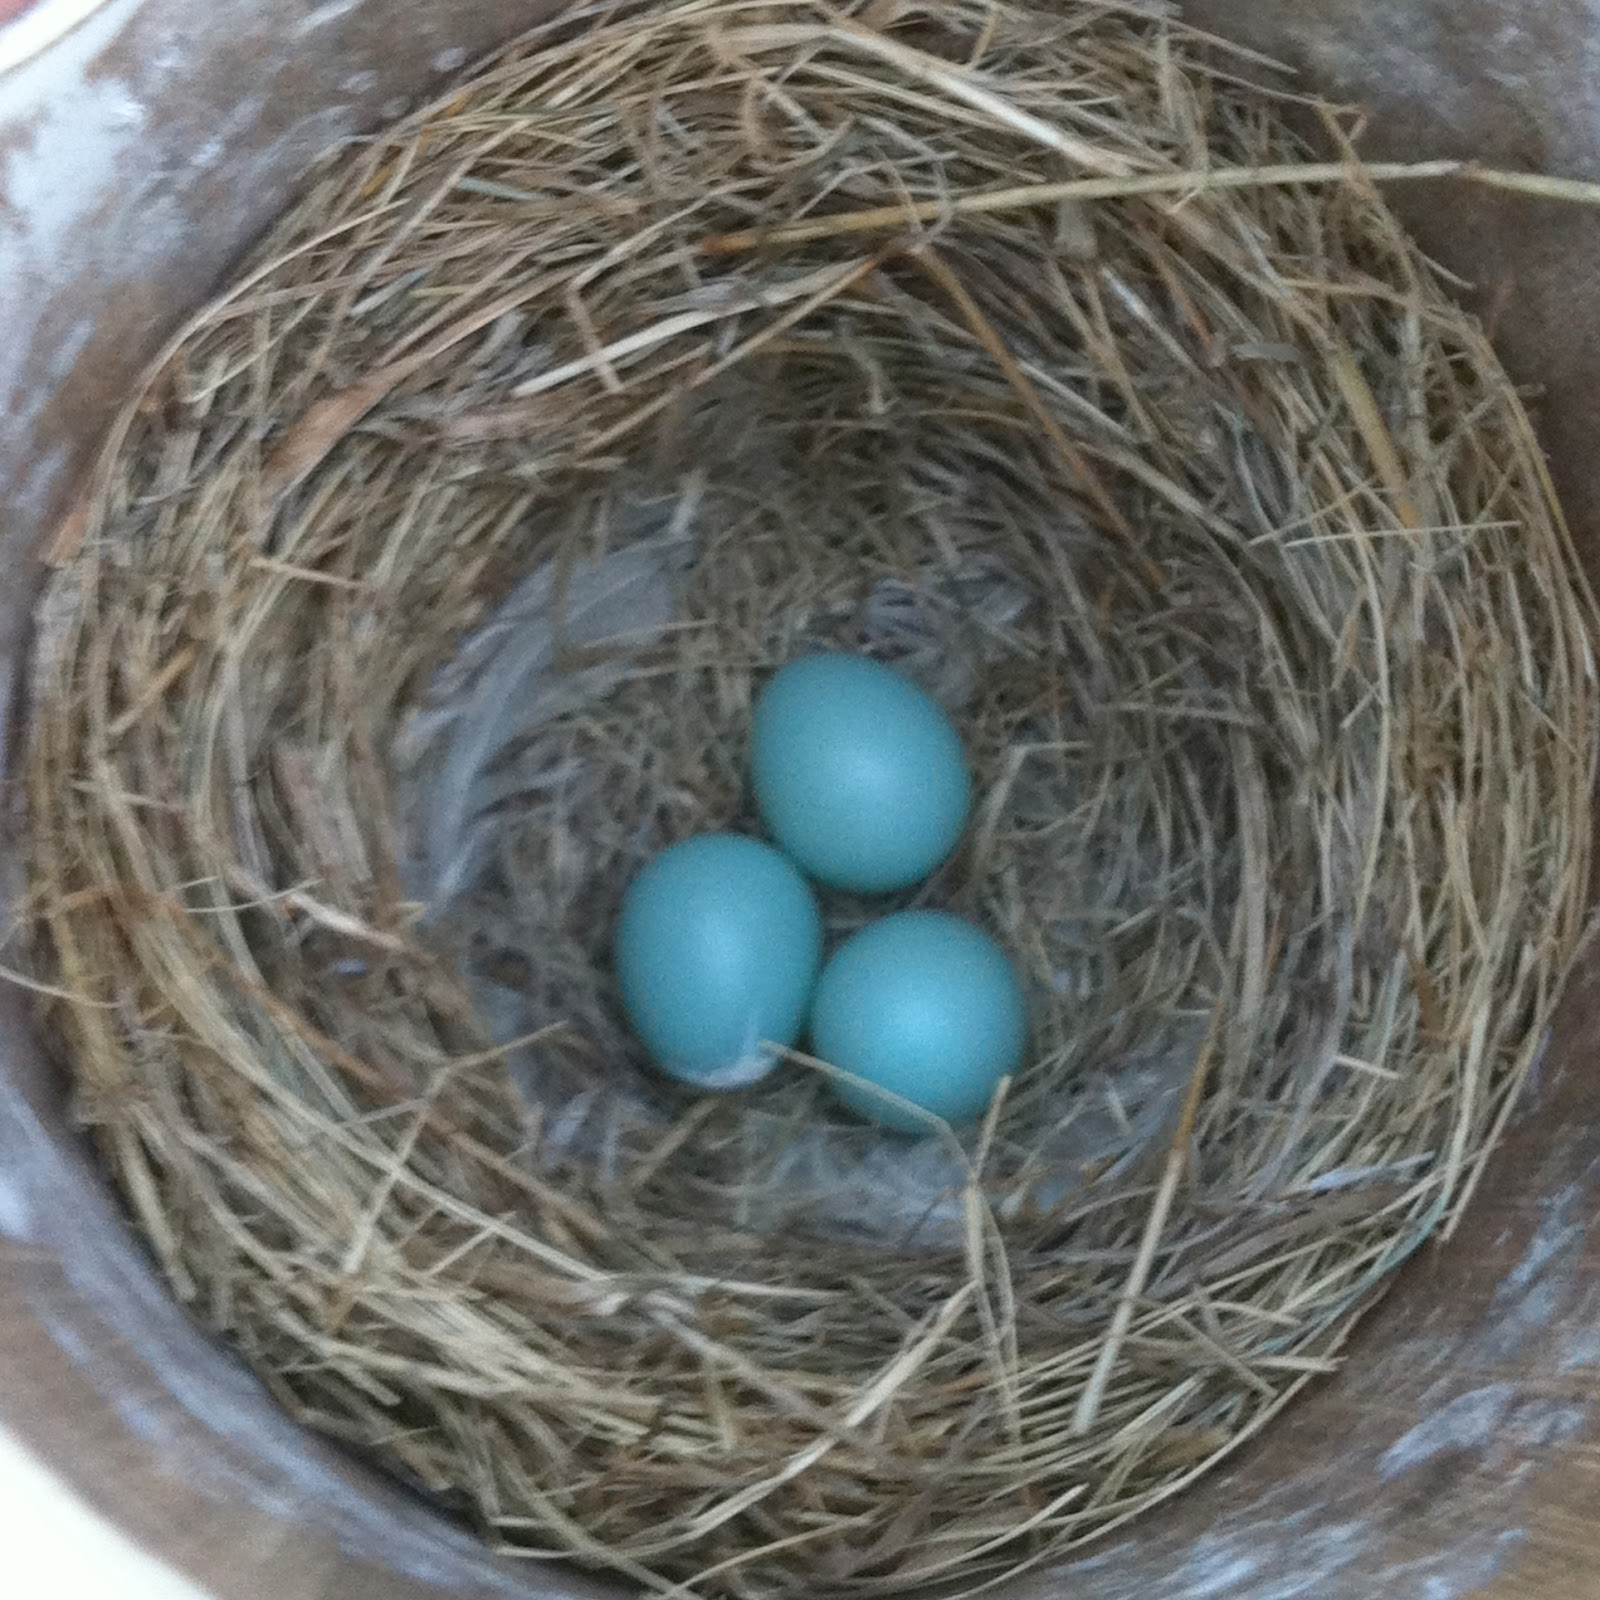 how to keep sparrows from nesting on your house